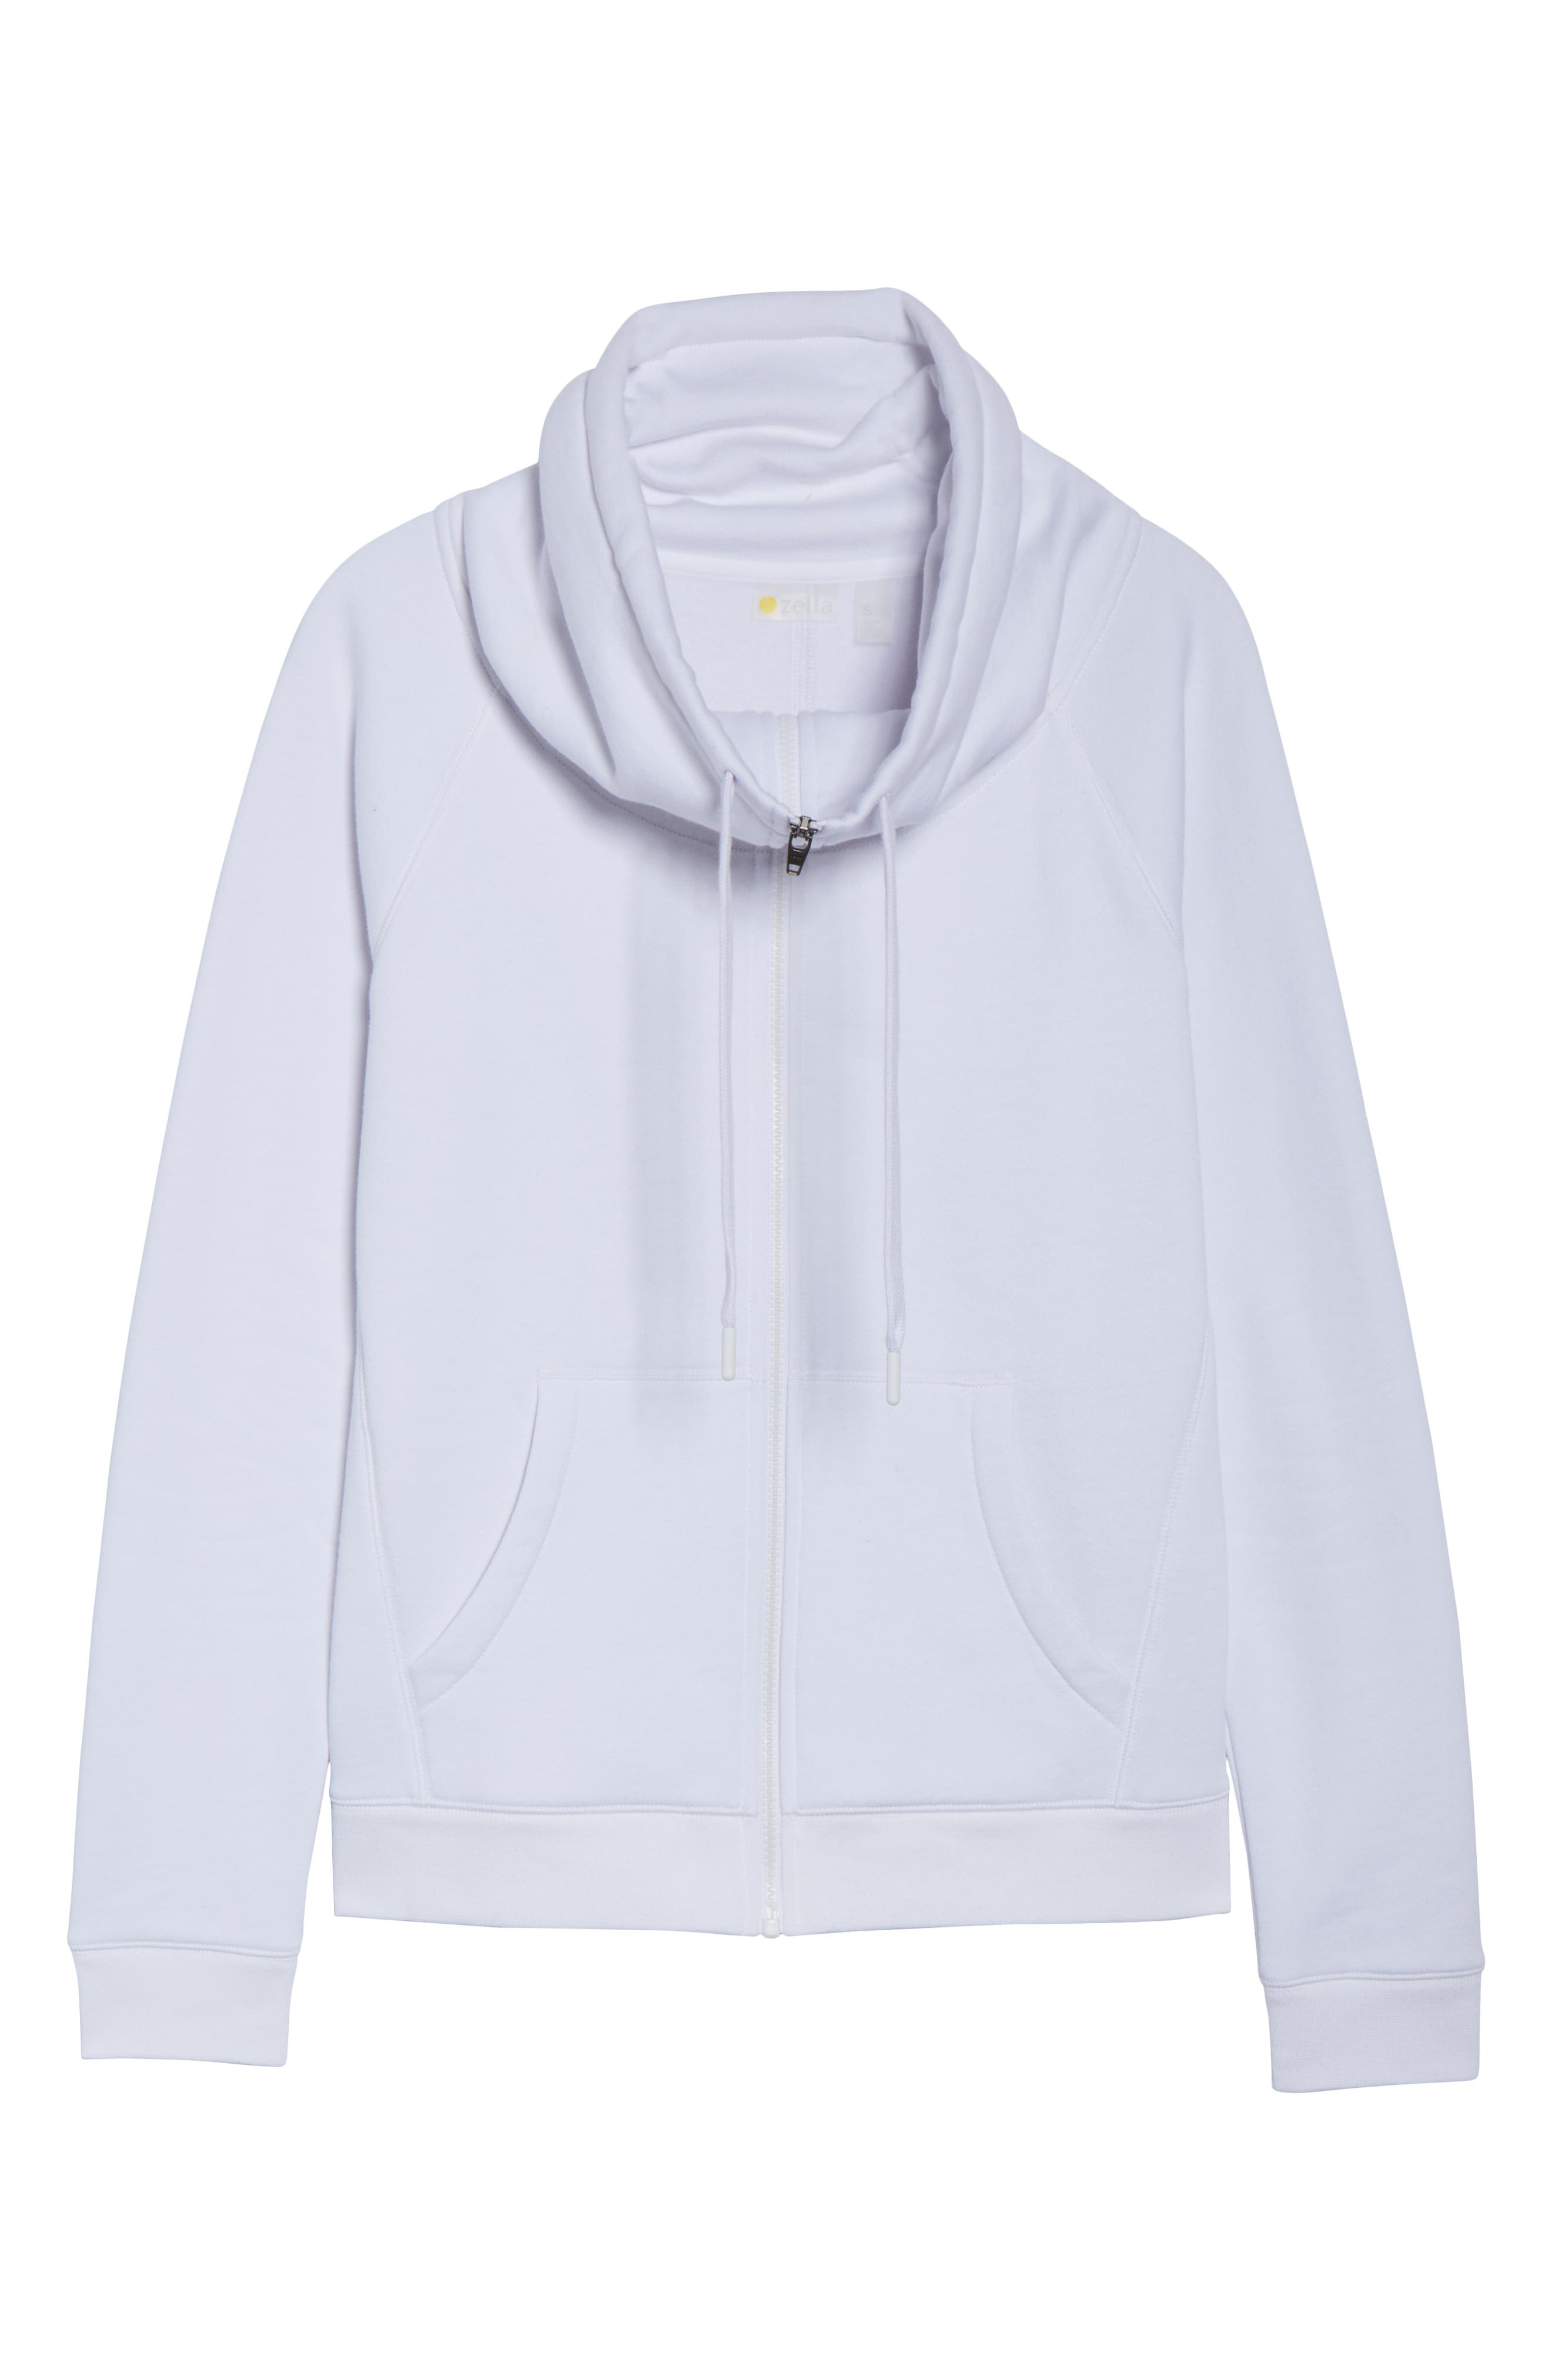 Old School Daydream Jacket,                             Alternate thumbnail 7, color,                             WHITE